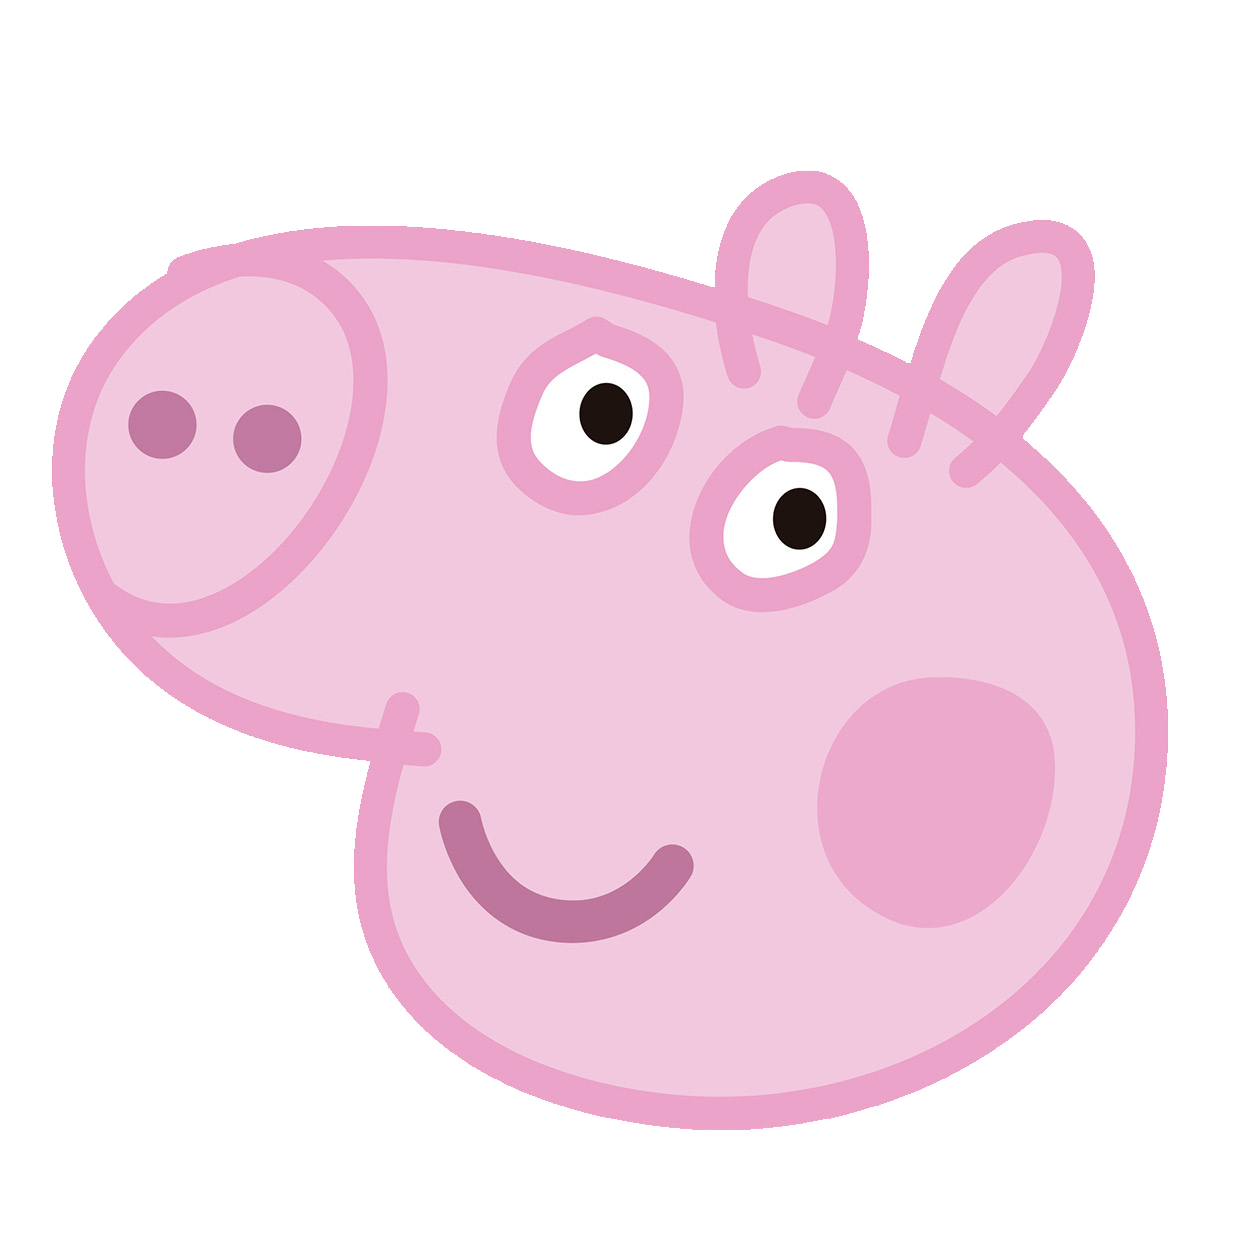 George parties pinterest and. House clipart peppa pig